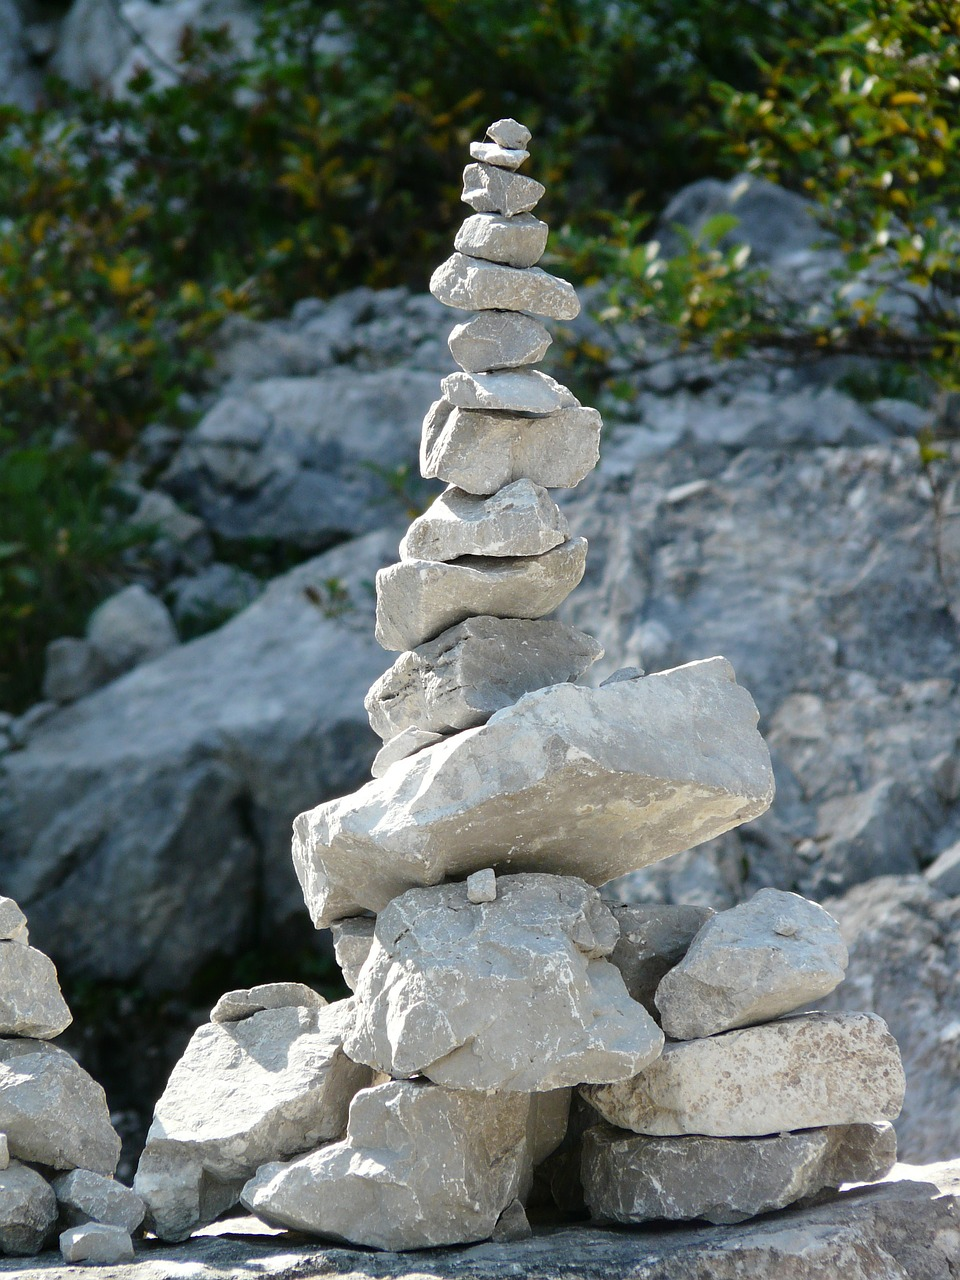 Establish Mindfulness » Blog Archive » An Opportunity to Build.